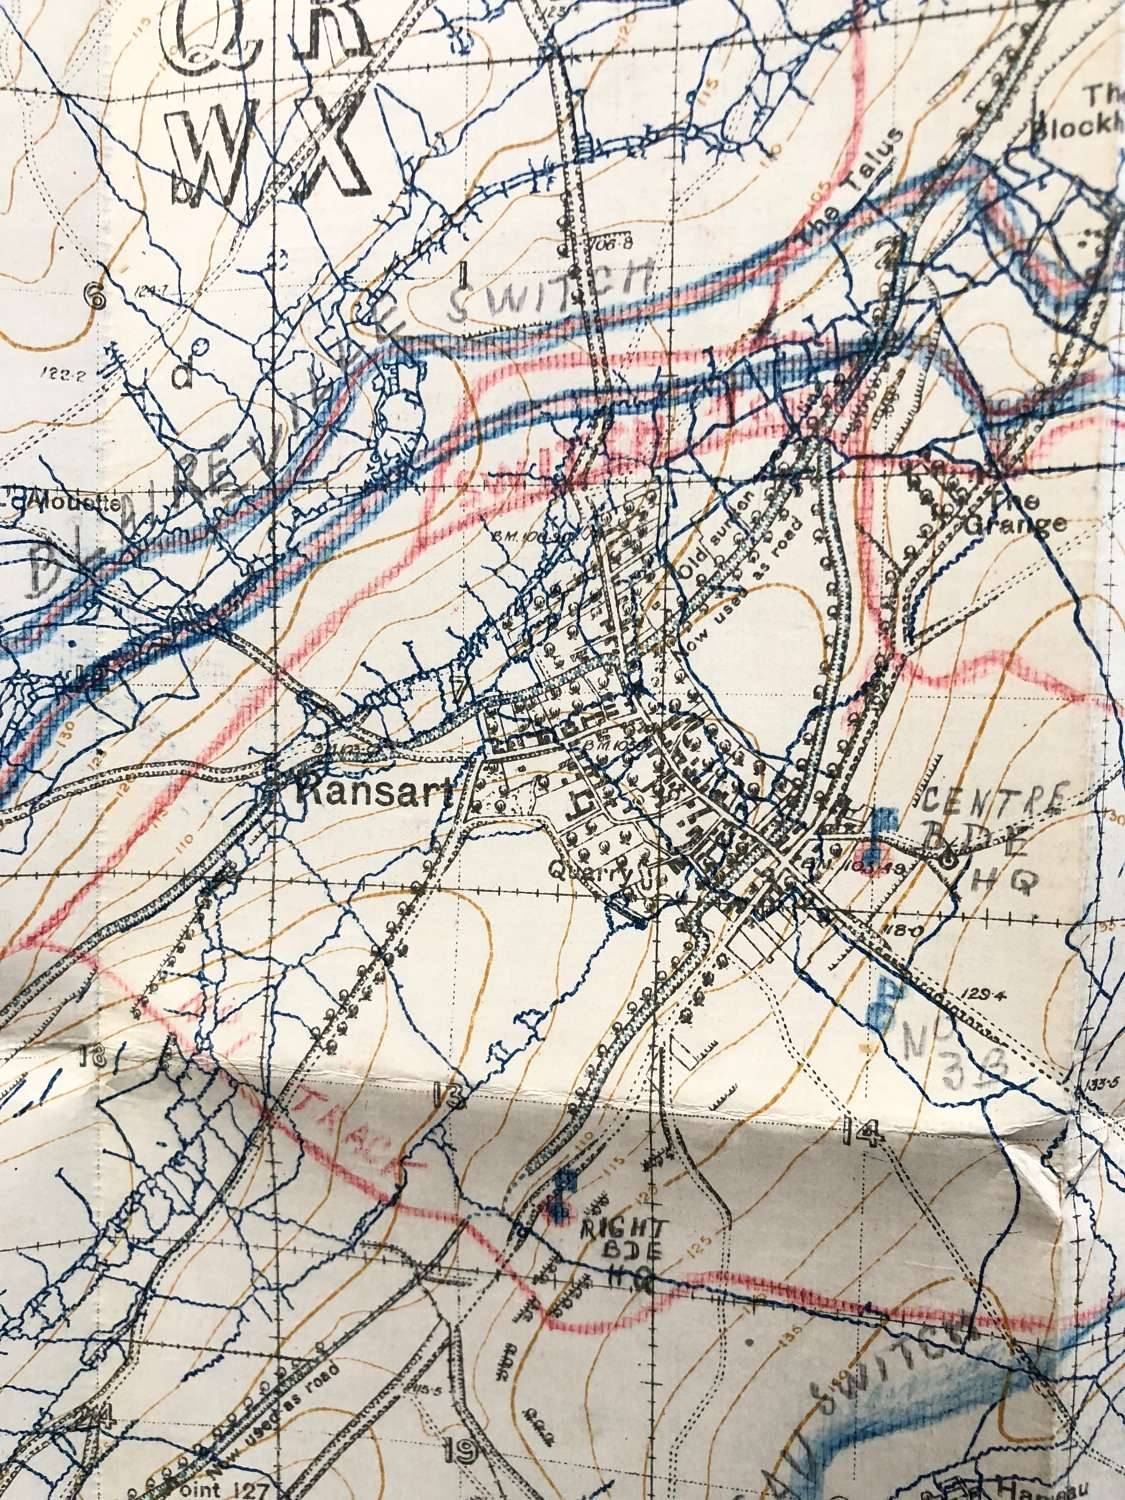 WW1 British Army February 1917 Trench Map. Sheet 51c SE